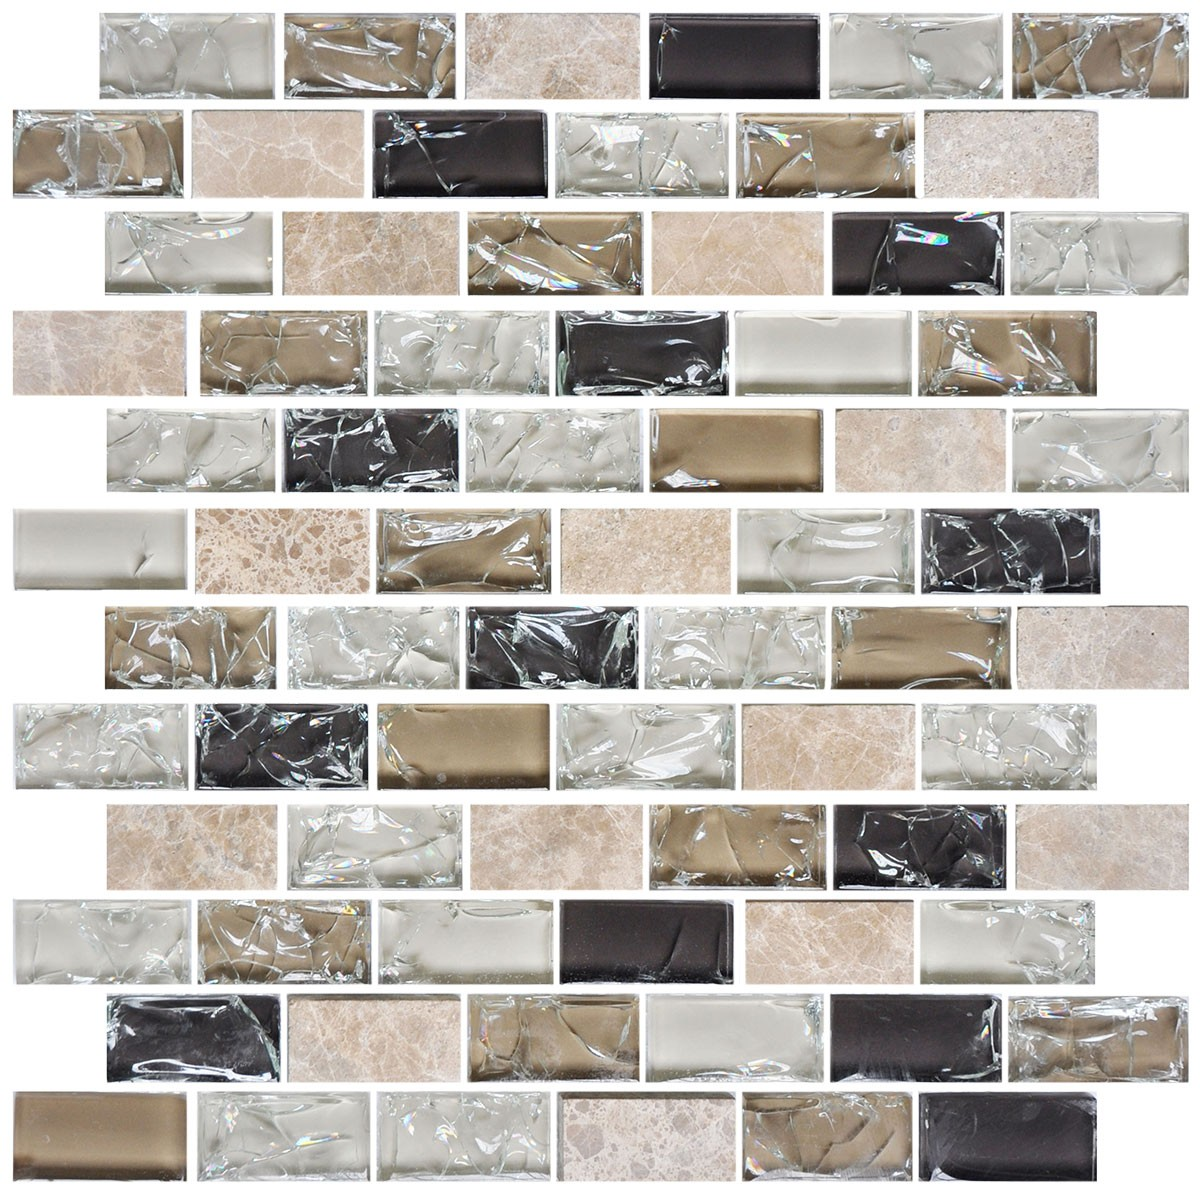 8mm Thickness Electroplated Glass Mosaic Tile - 12 in. x 12 in. (DK-RS2348S02)